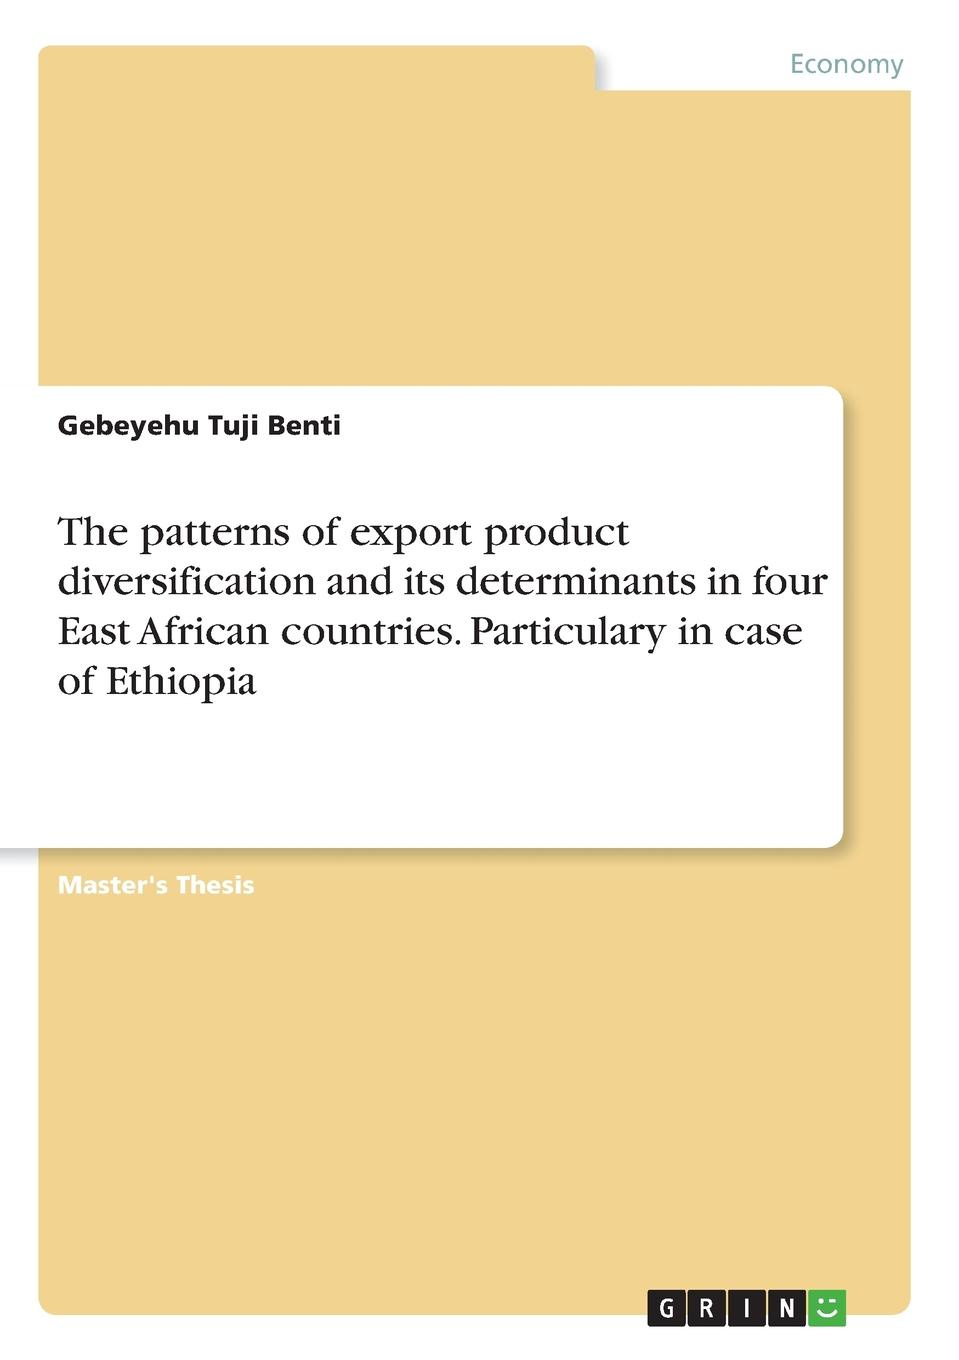 Gebeyehu Tuji Benti The patterns of export product diversification and its determinants in four East African countries. Particulary in case of Ethiopia indian agricultural export in the liberalized era